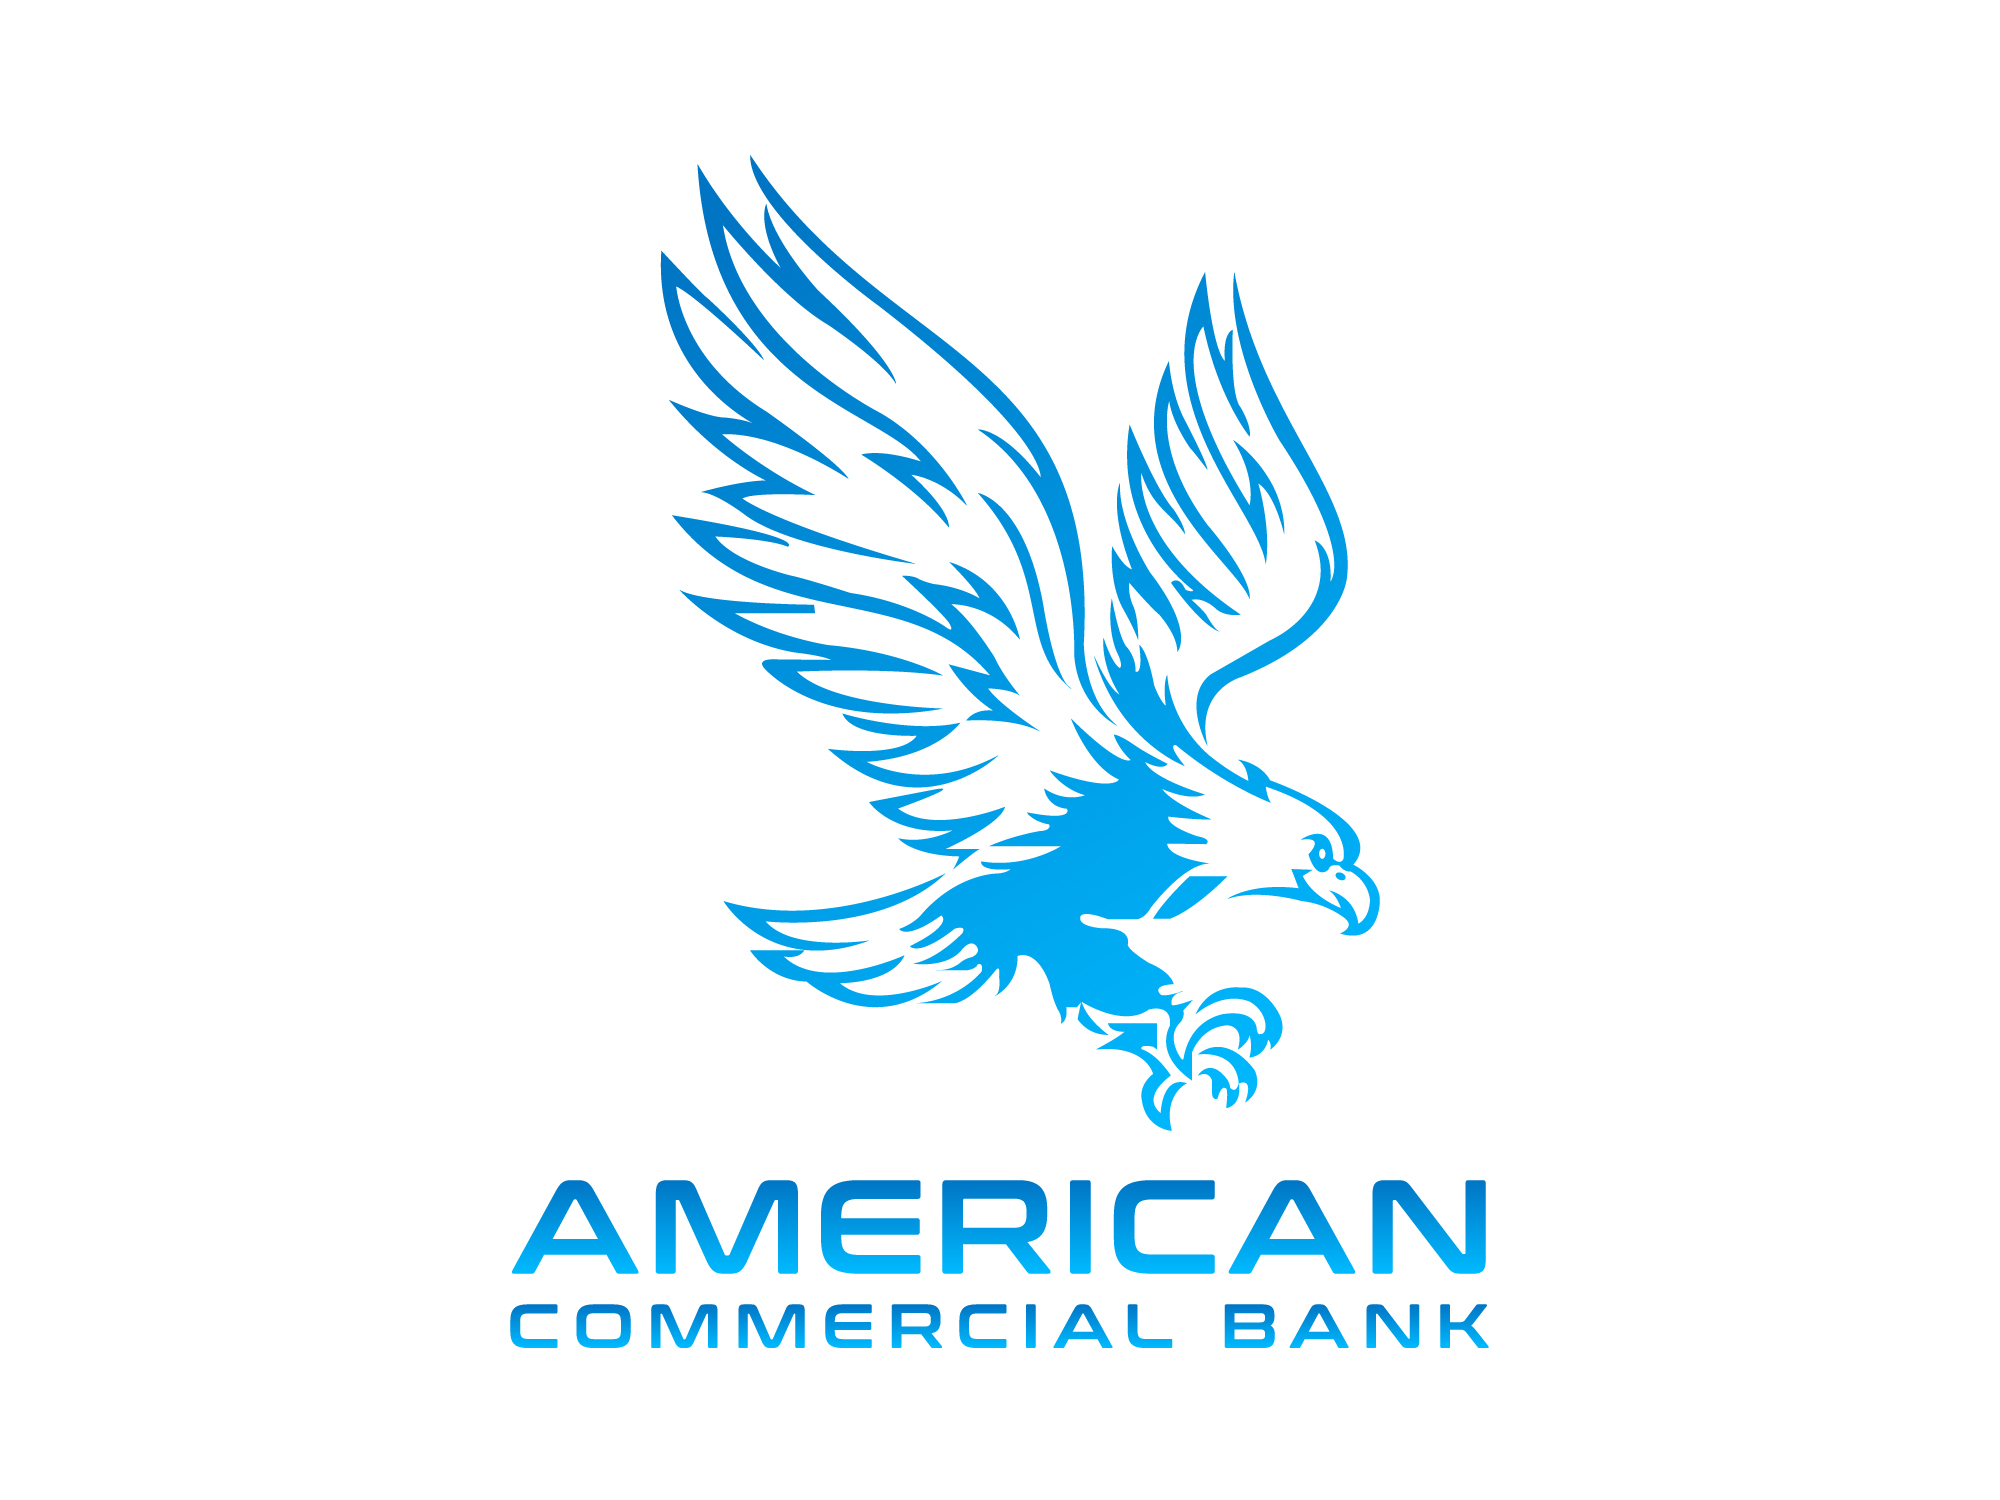 AMERICAN COMMERCIAL EAGLE.JPG